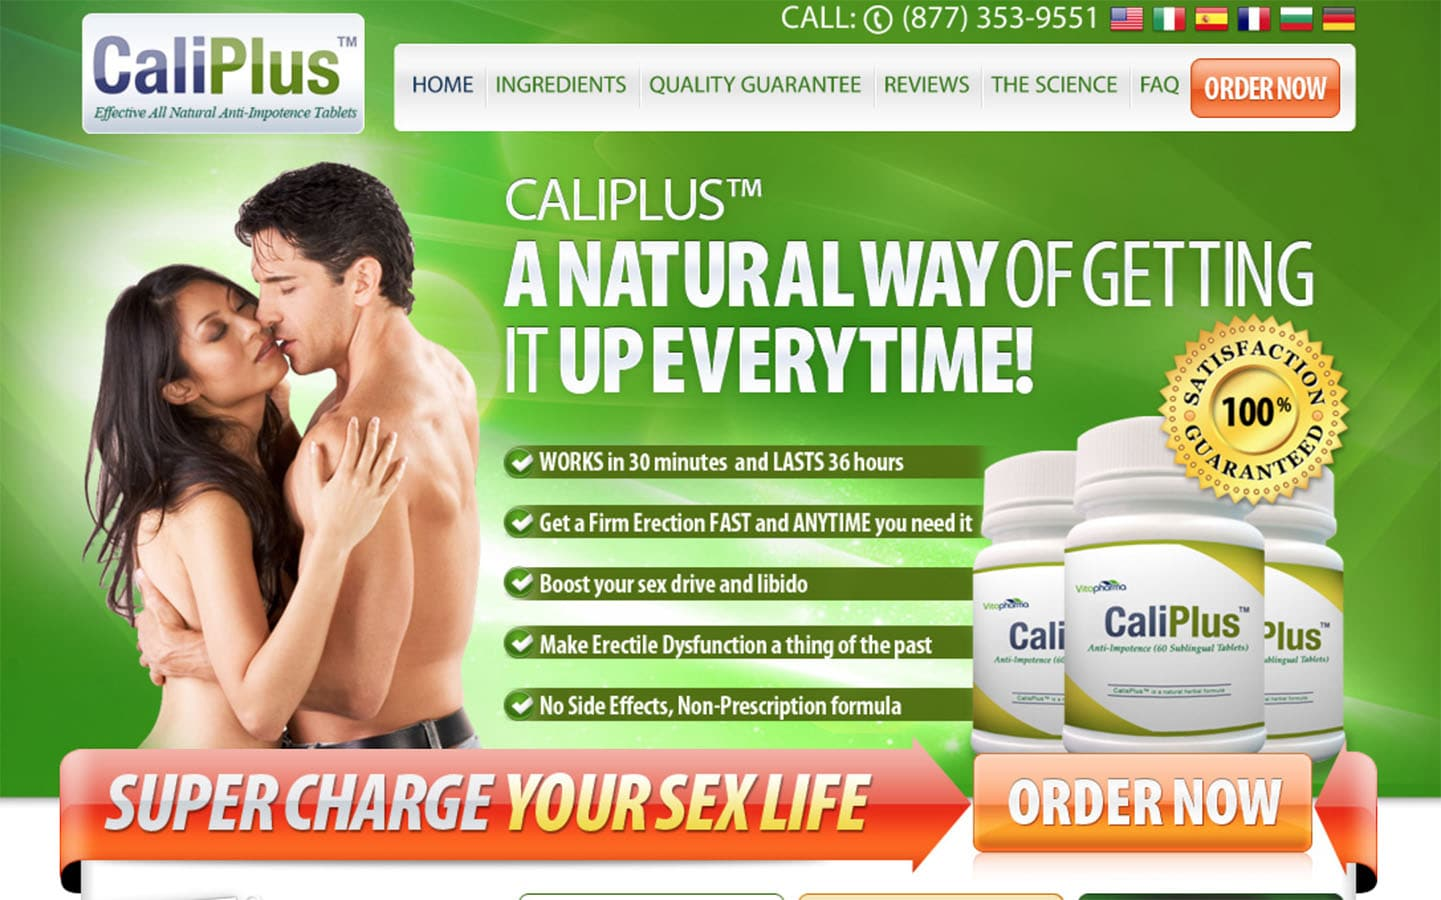 caliplus uk website